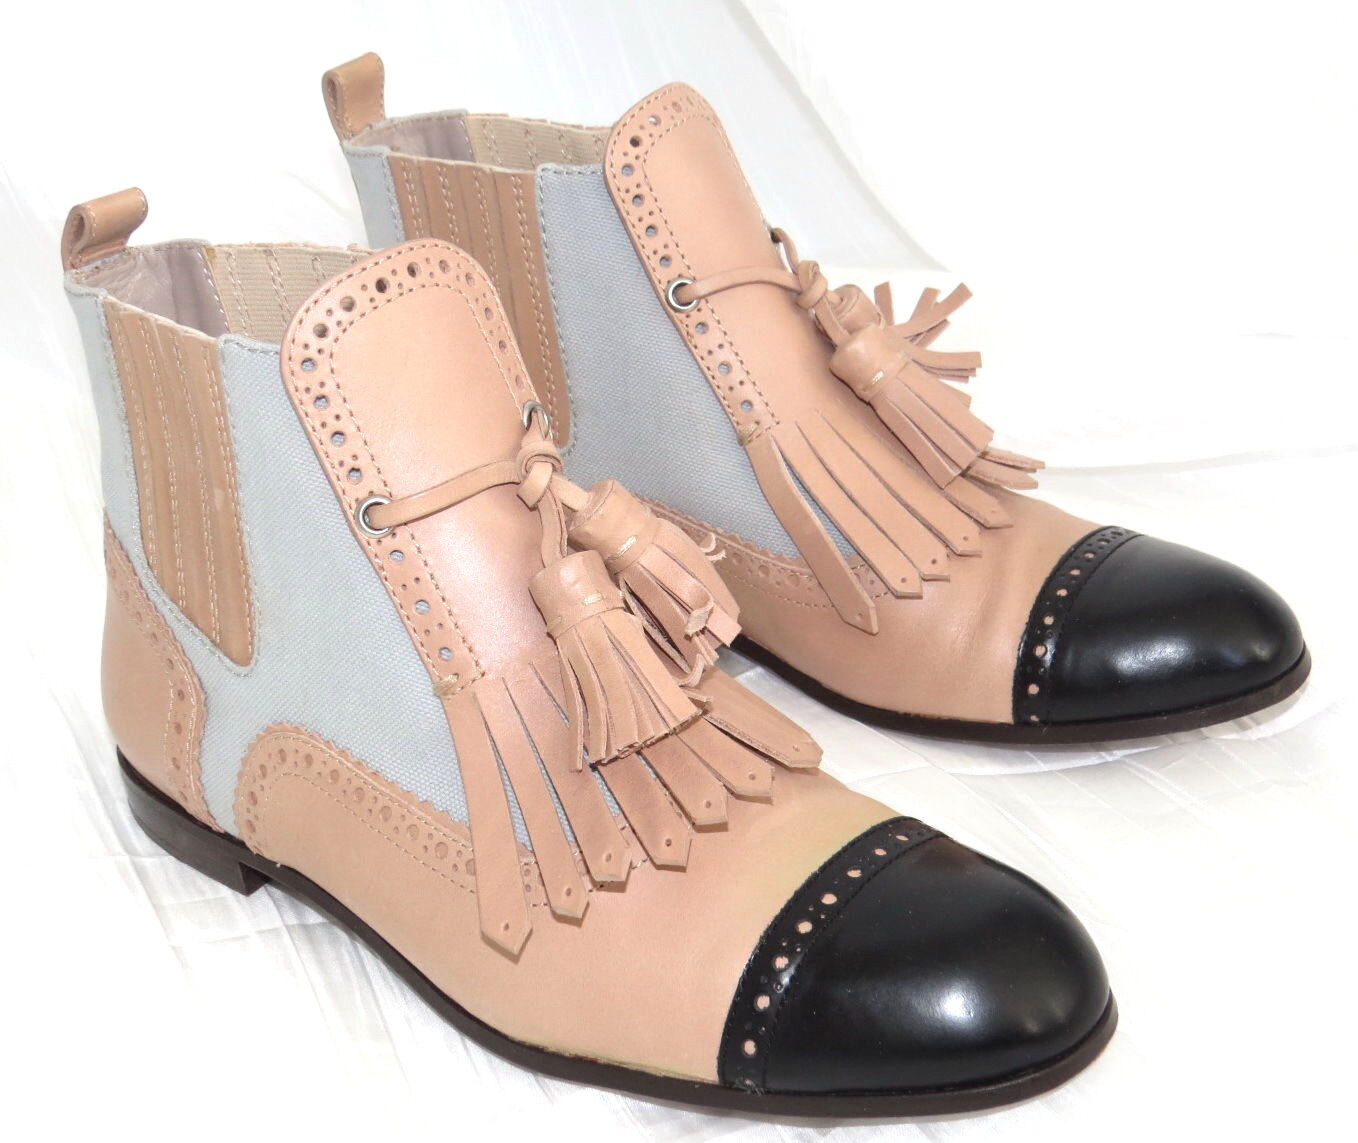 MARC BY MARC JACOBS Tan Leather Fringe Oxford Ankle Boots shoes Sz 8 7.5 EU 38.5